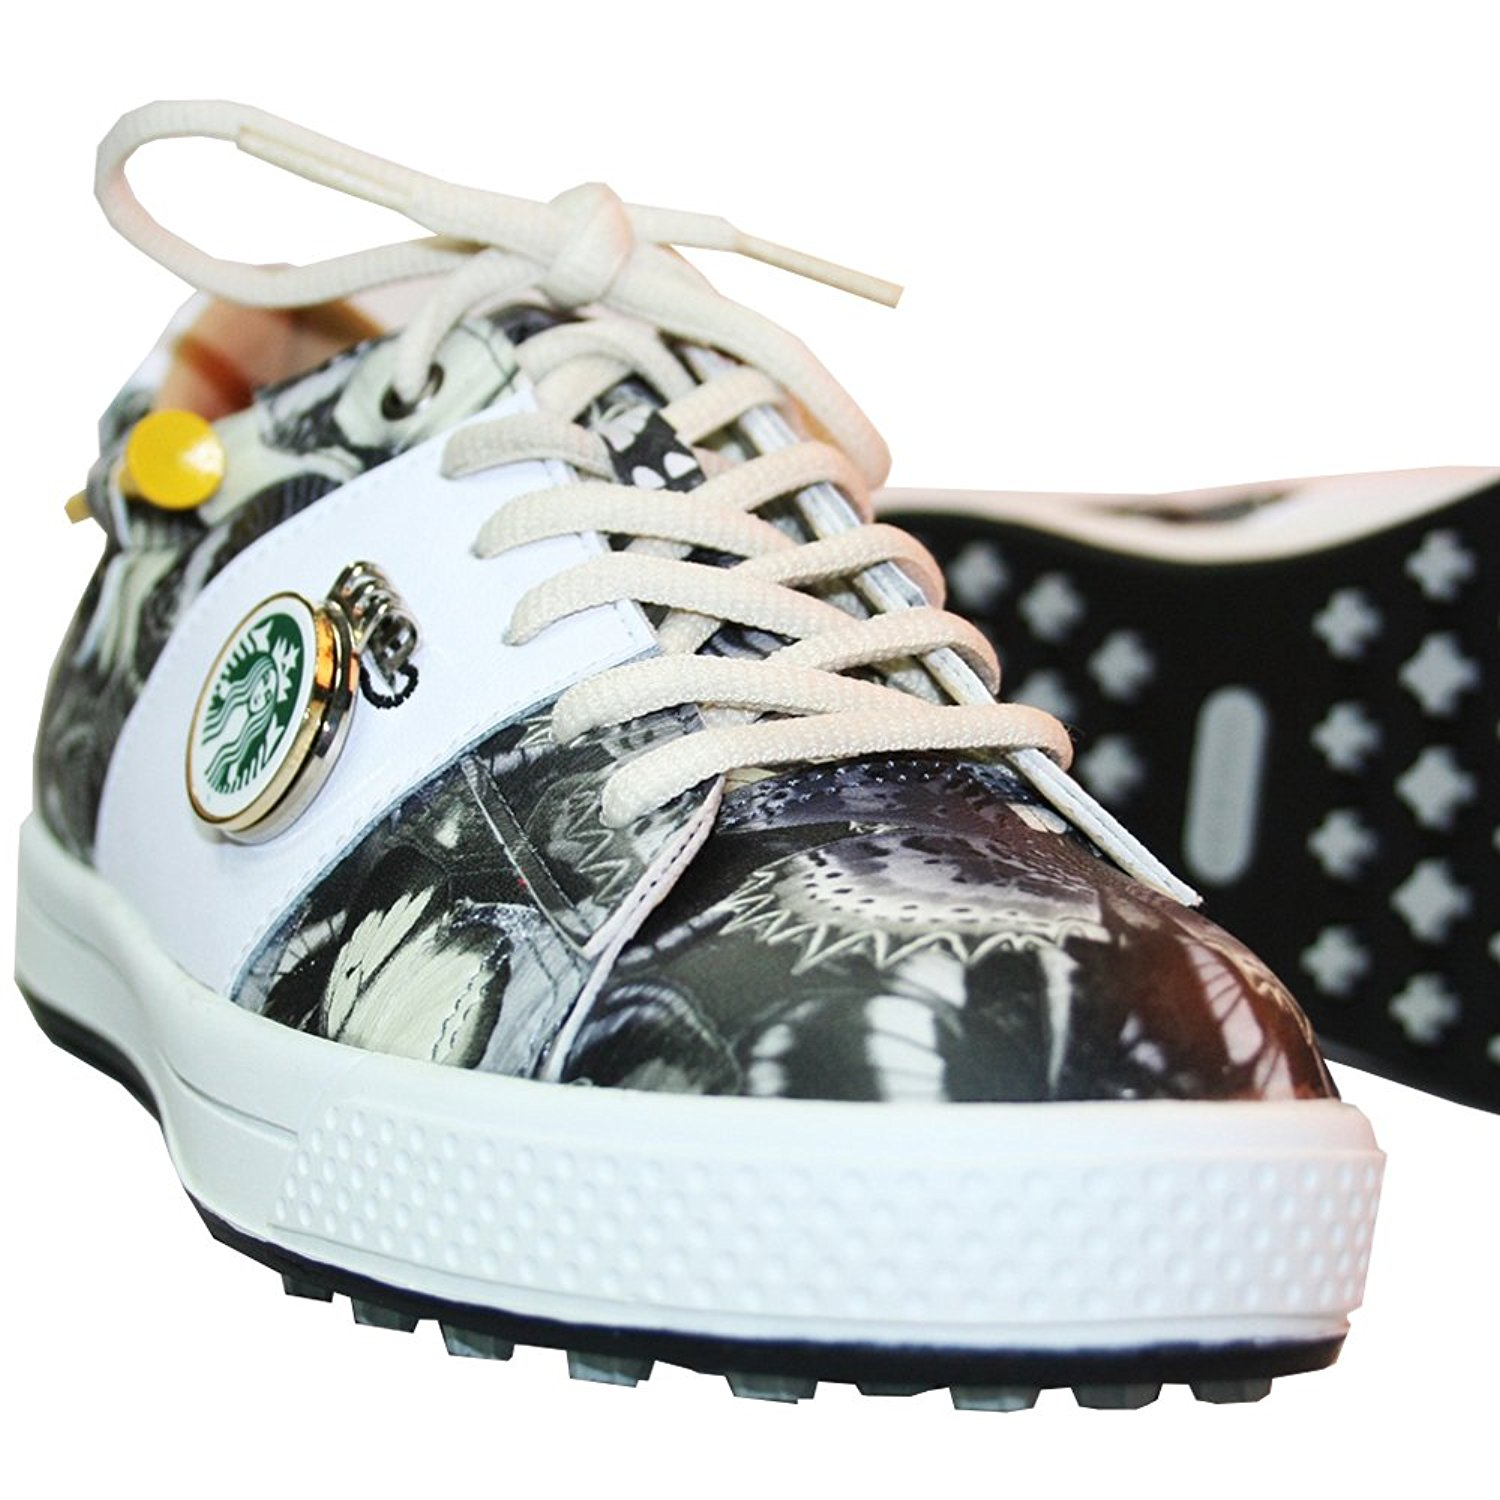 KARAKARA Spike-less Golf Shoes, KR-403, 3Colors (Black, Purple, Yellow) 225 - 250 mm, for Women